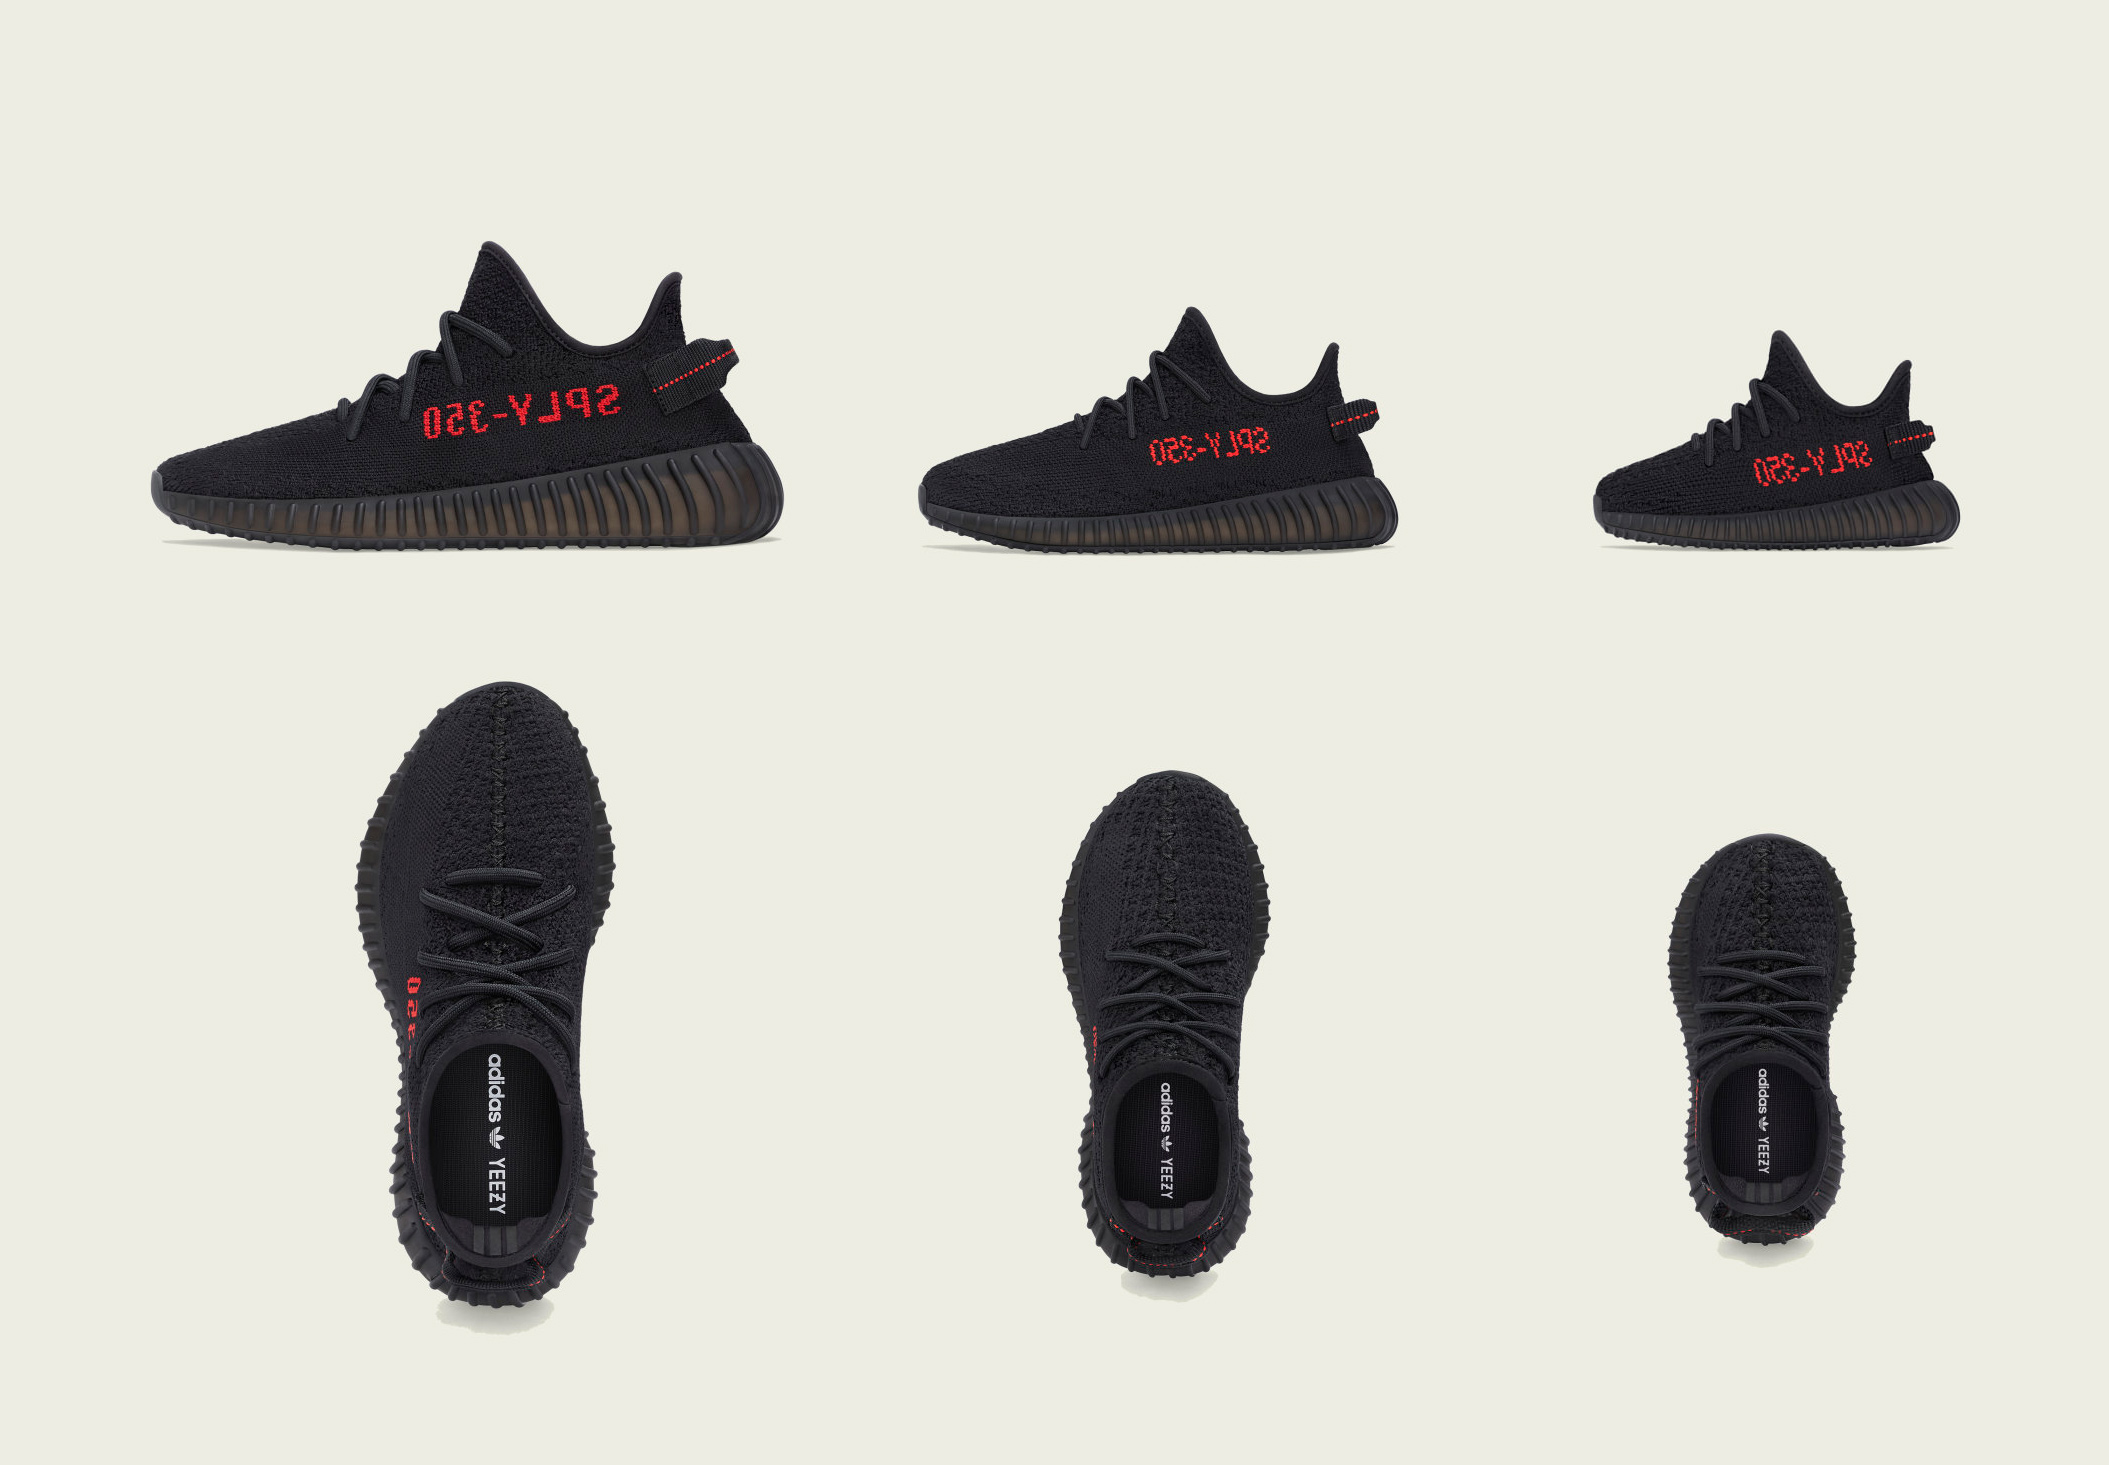 Adidas Yeezy Boost 350 V2 Black Red 2020 Sneakerb0b Releases